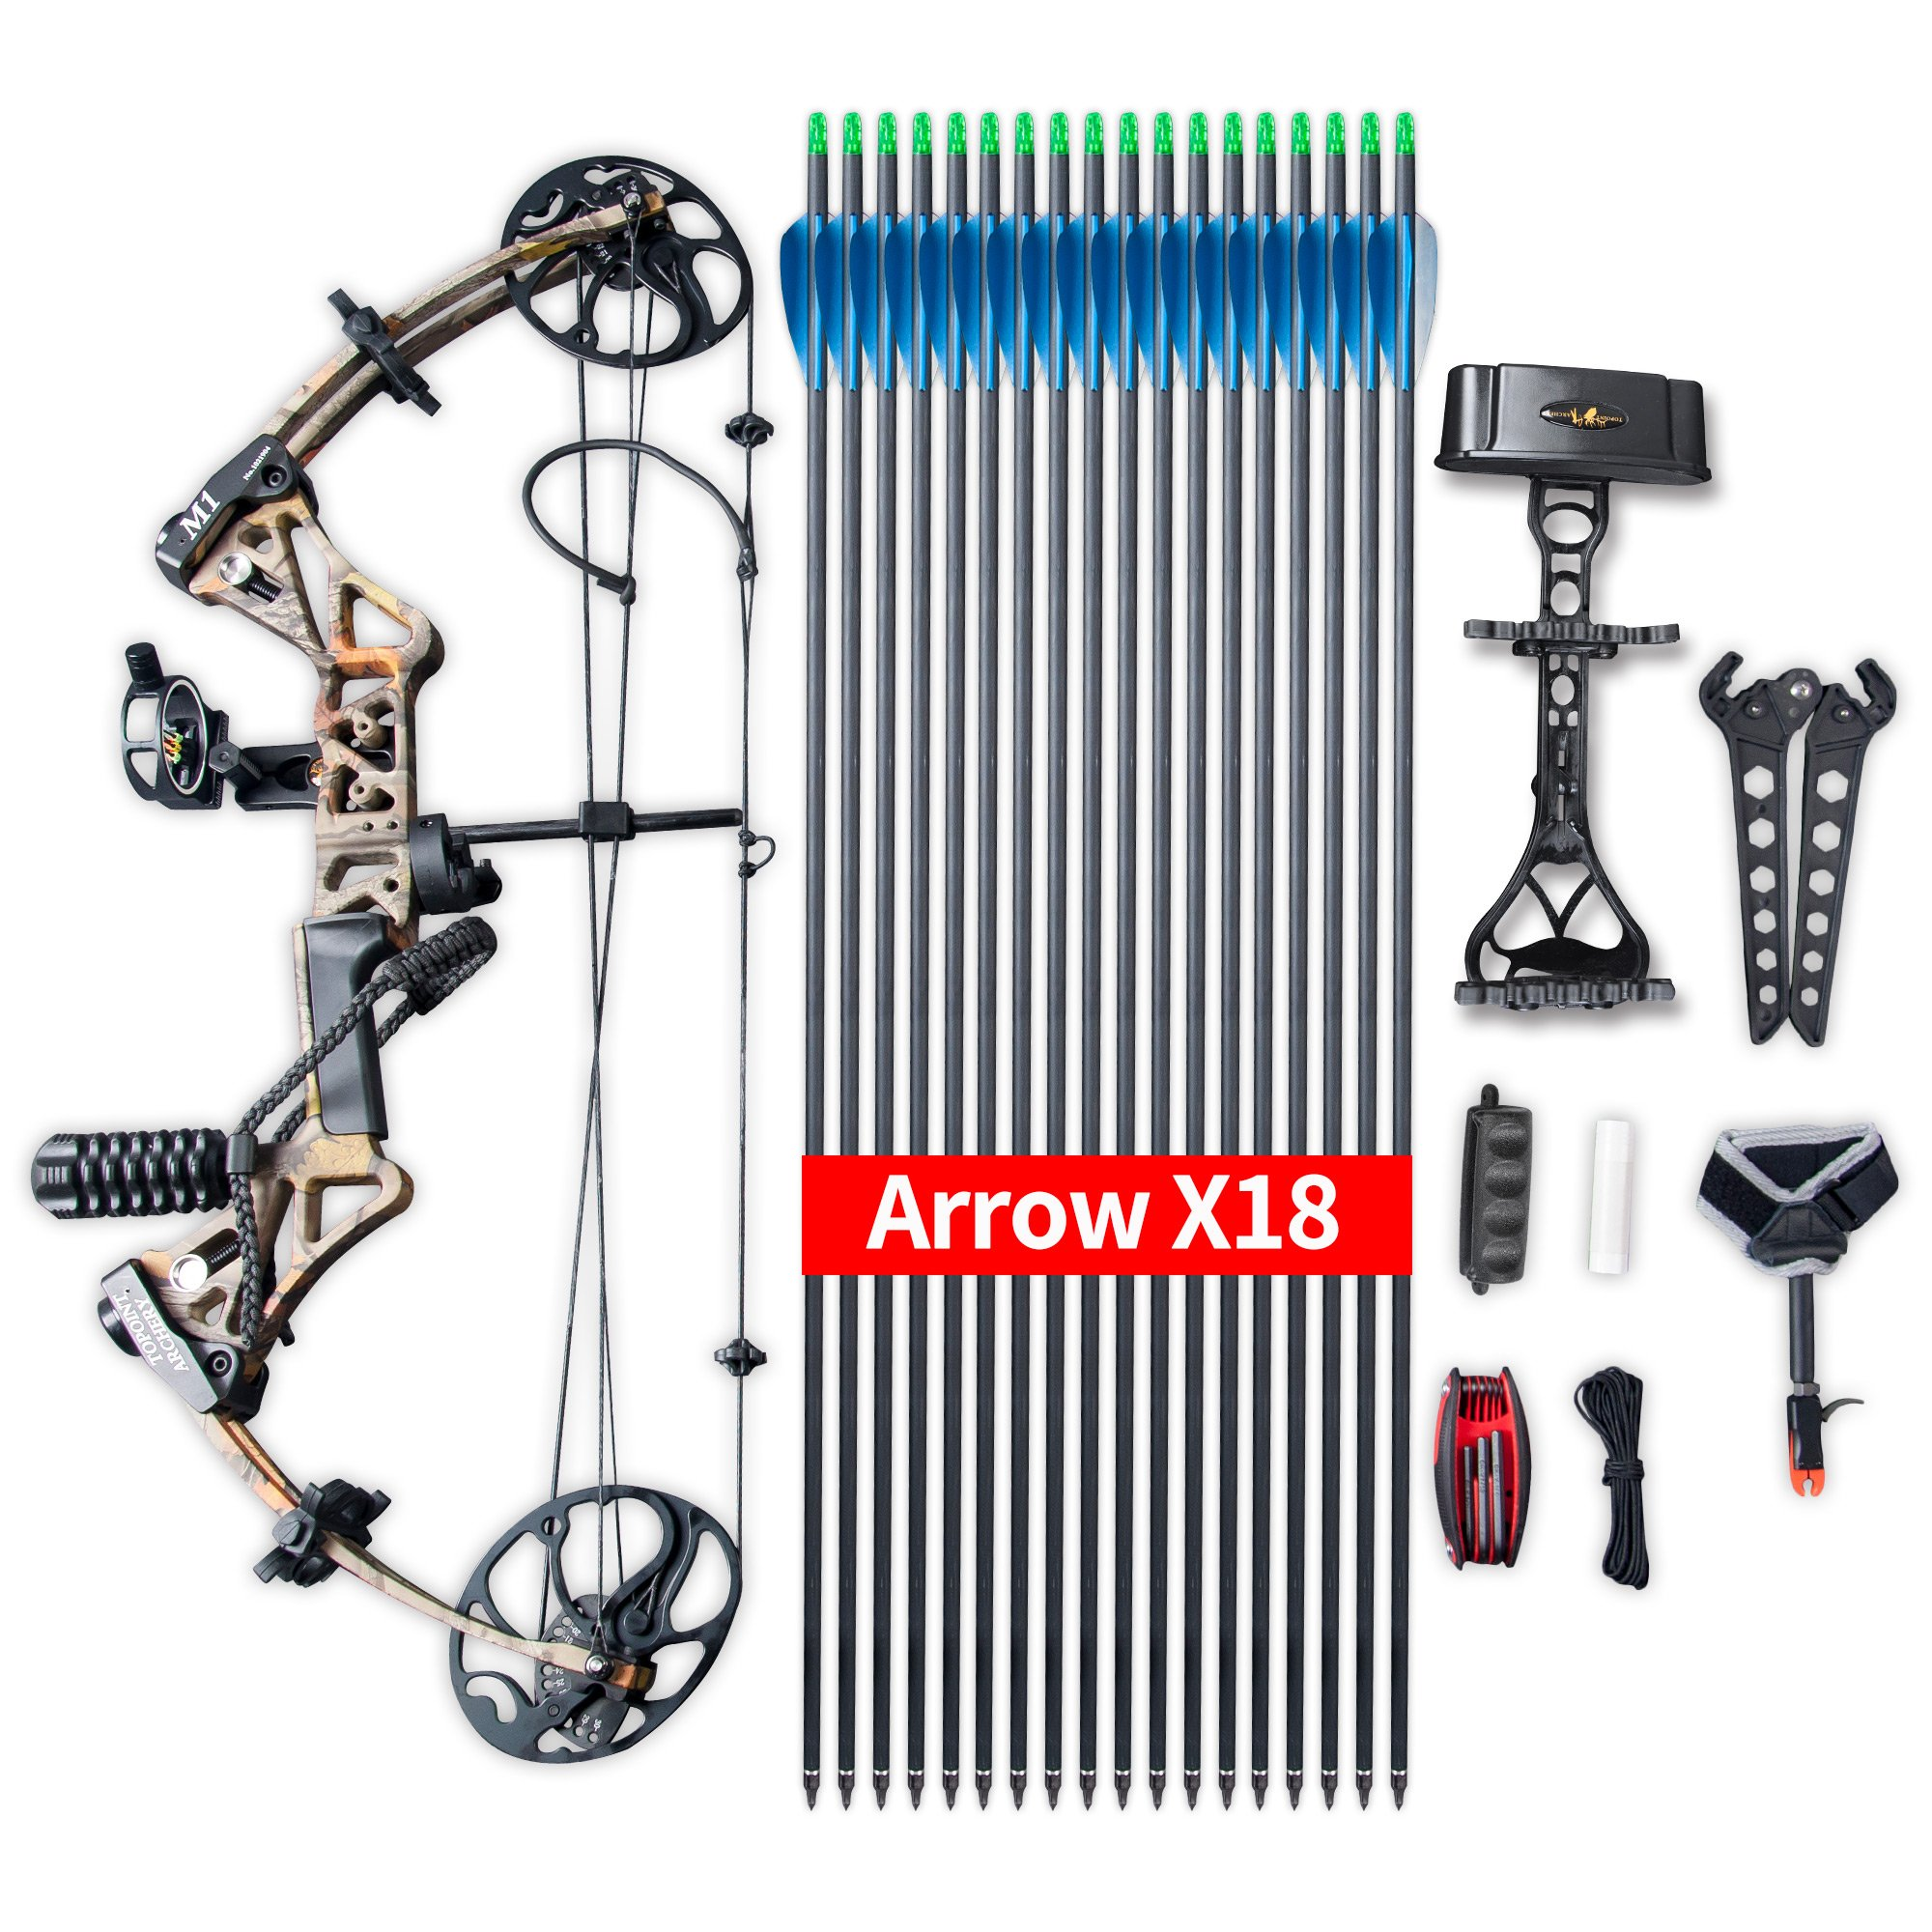 """Compound Bow Ship from USA Warehouse,Topoint Archery Package,M1,19""""-30"""" Draw Length,19-70Lbs Draw Weight,320fps IBO Limbs Made in USA (Forest camo)"""